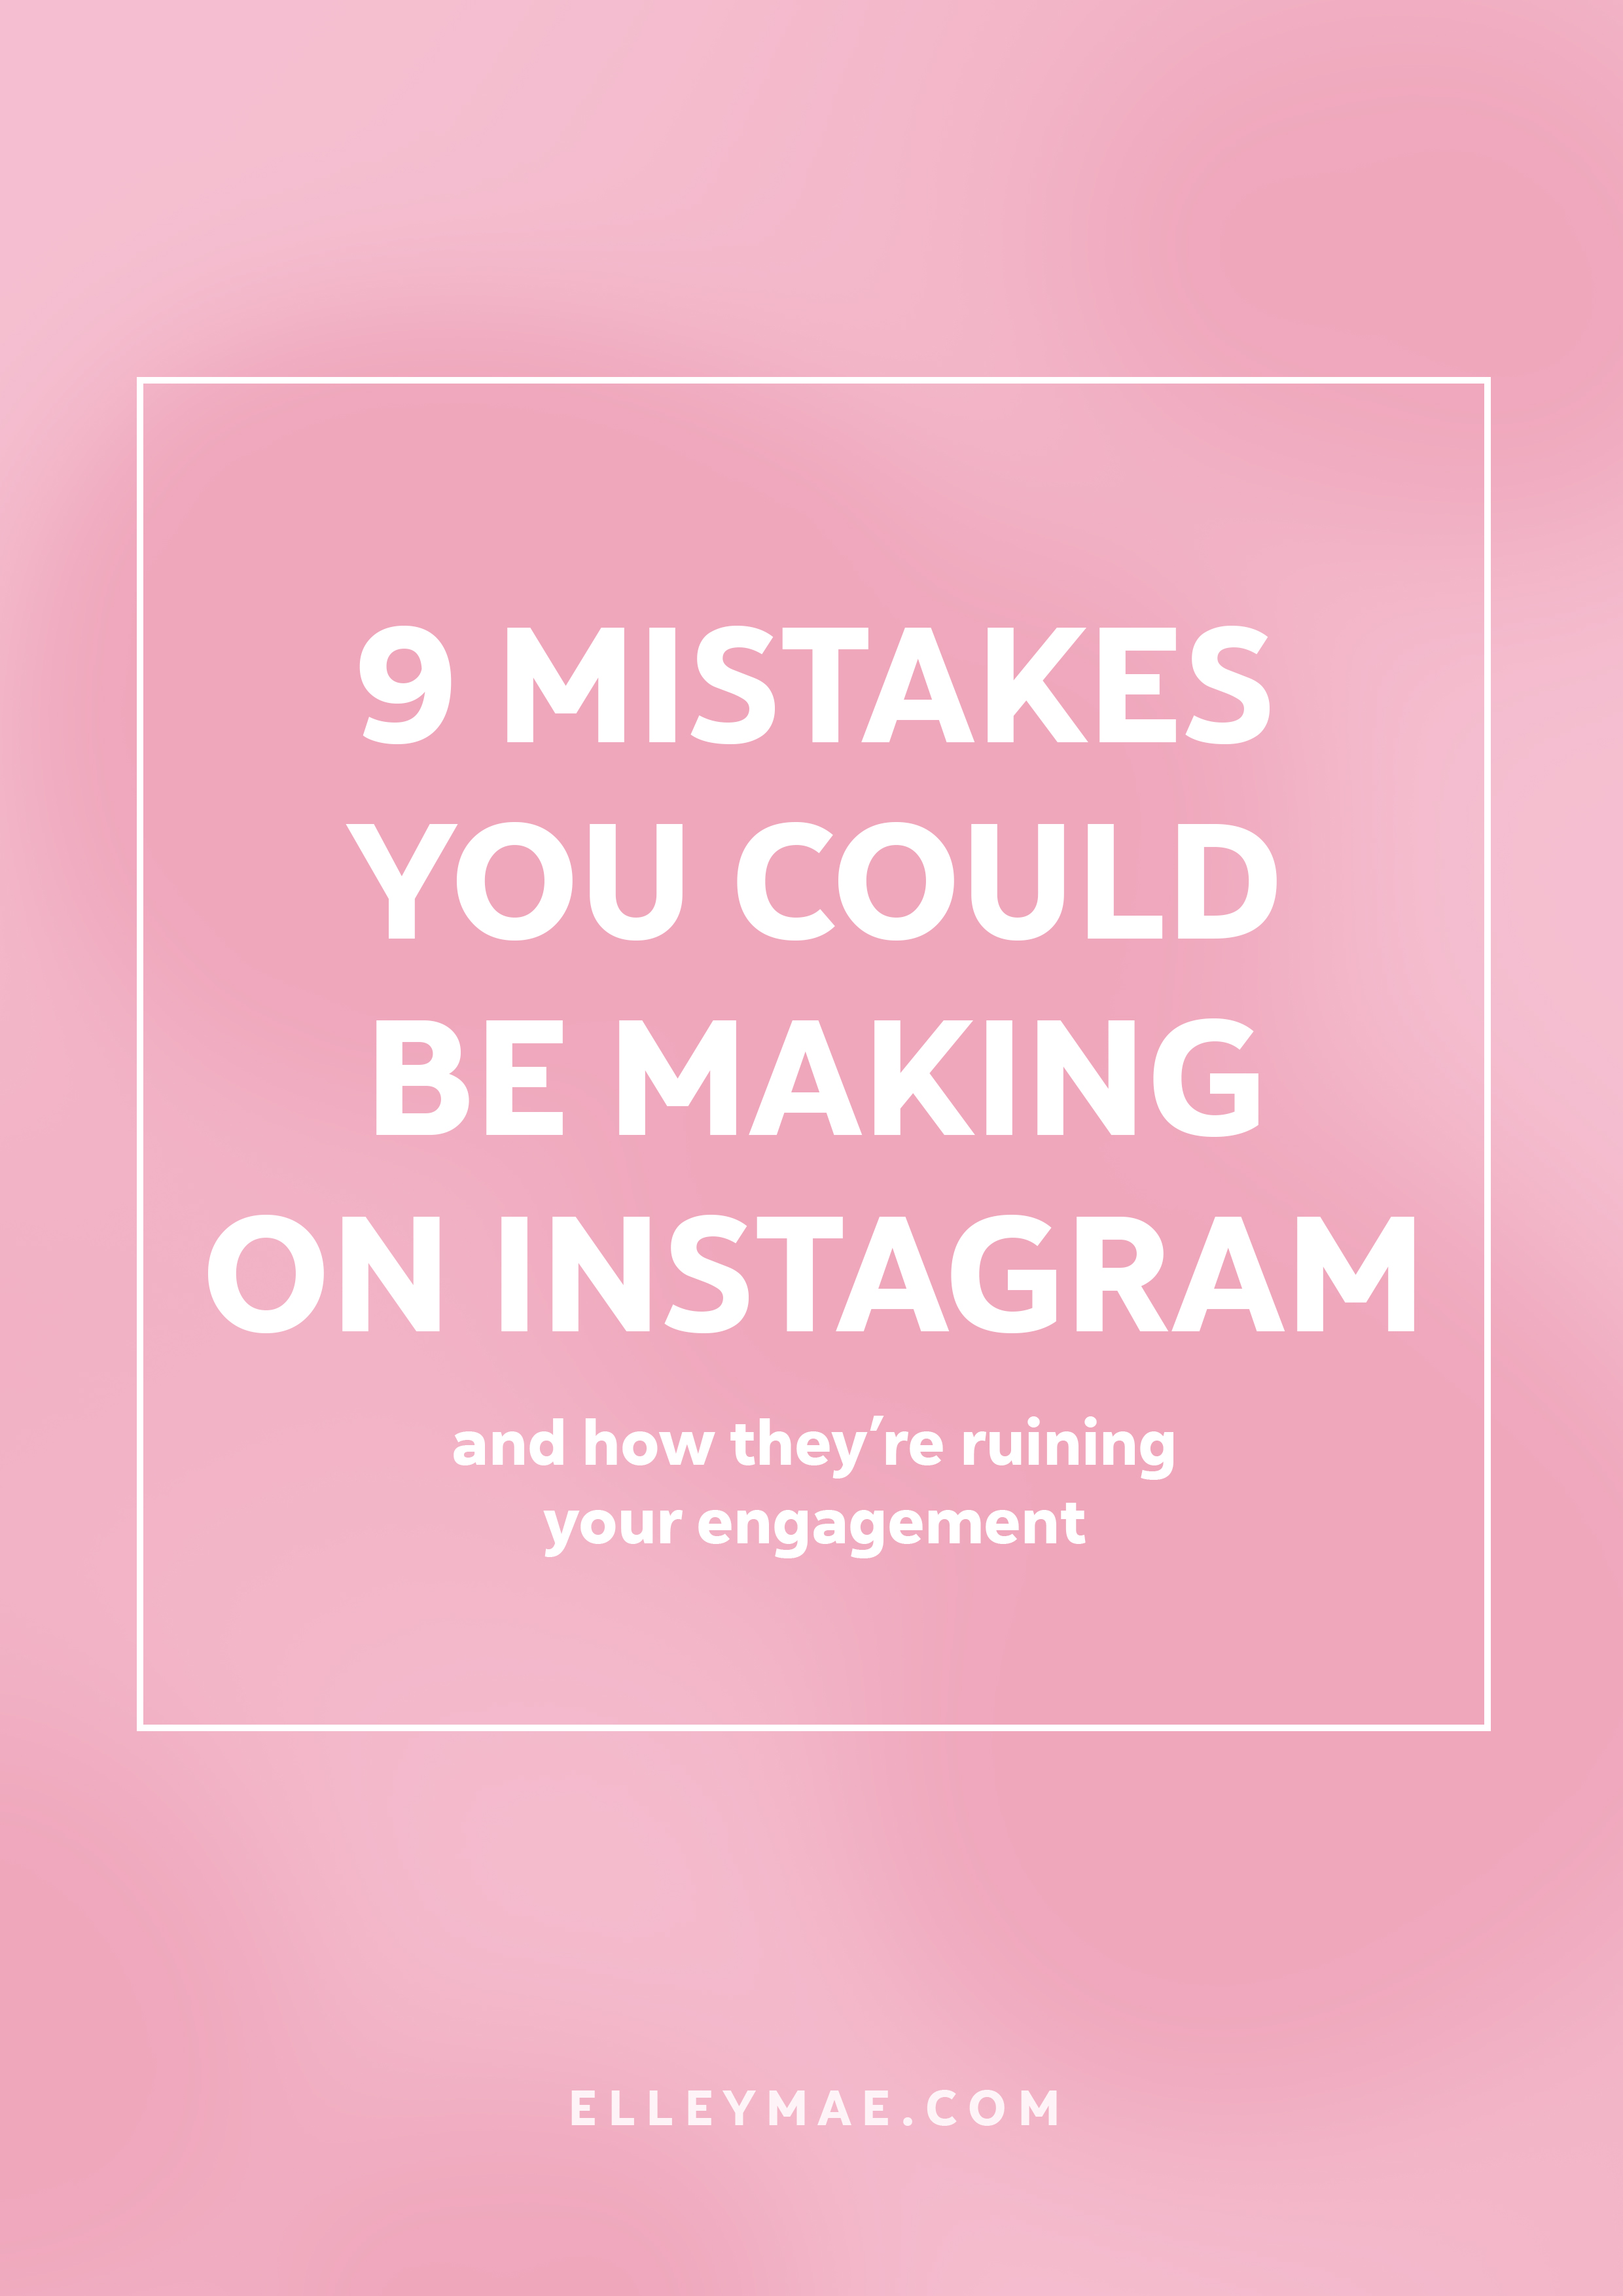 9 Mistakes You Could Be Making on Instagram | Ever wondered why your follower count is going down, not up? Sick of trying to work out a way to beat the Instagram algorithm? Learn how to use Instagram wisely & grow your following | Learn more at ElleyMae.com